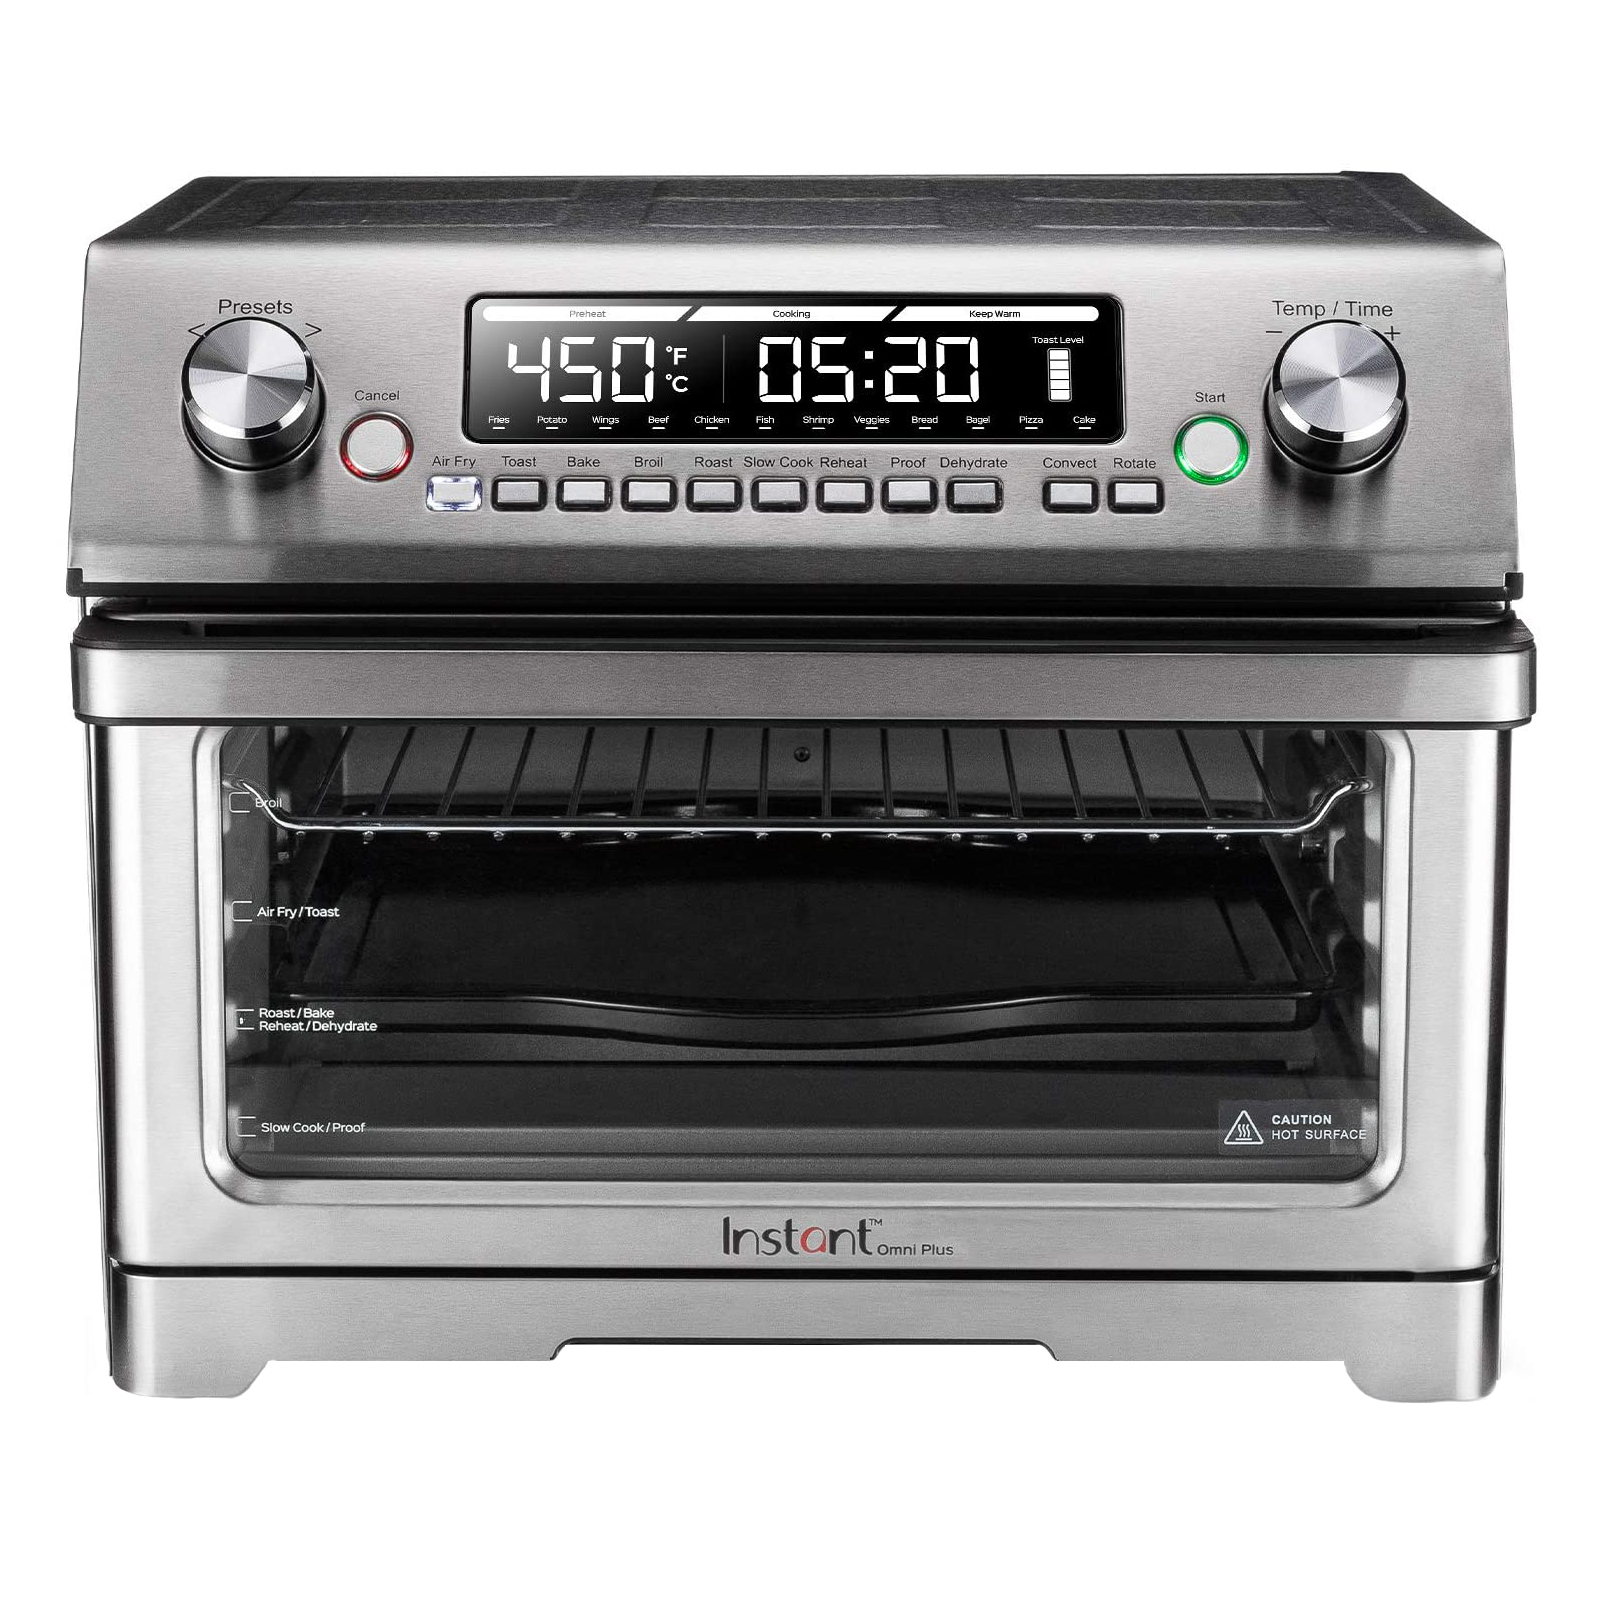 Instant Stainless-Steel Omni Plus Toaster Oven